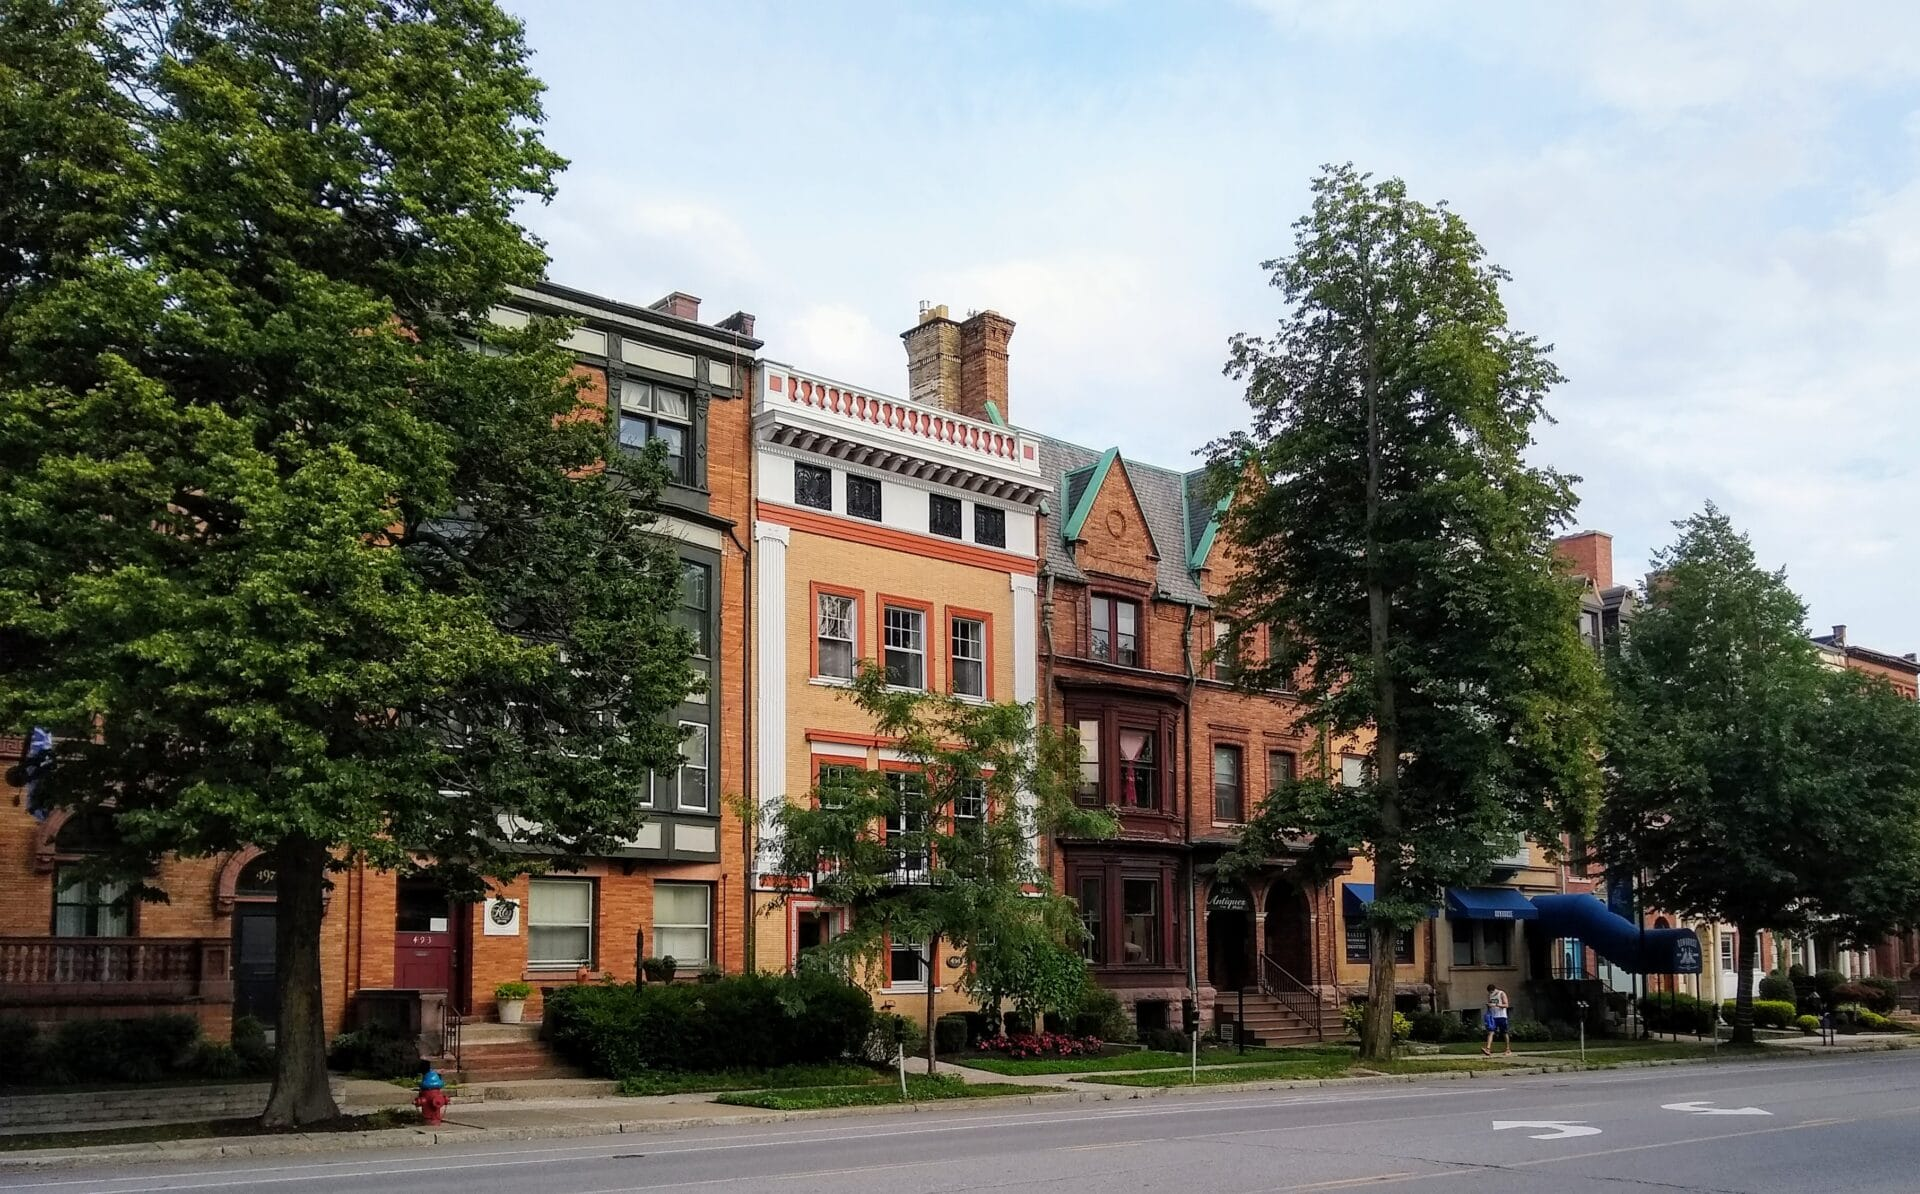 Buffalo's Rowhouses – The Midway on Delaware Ave.